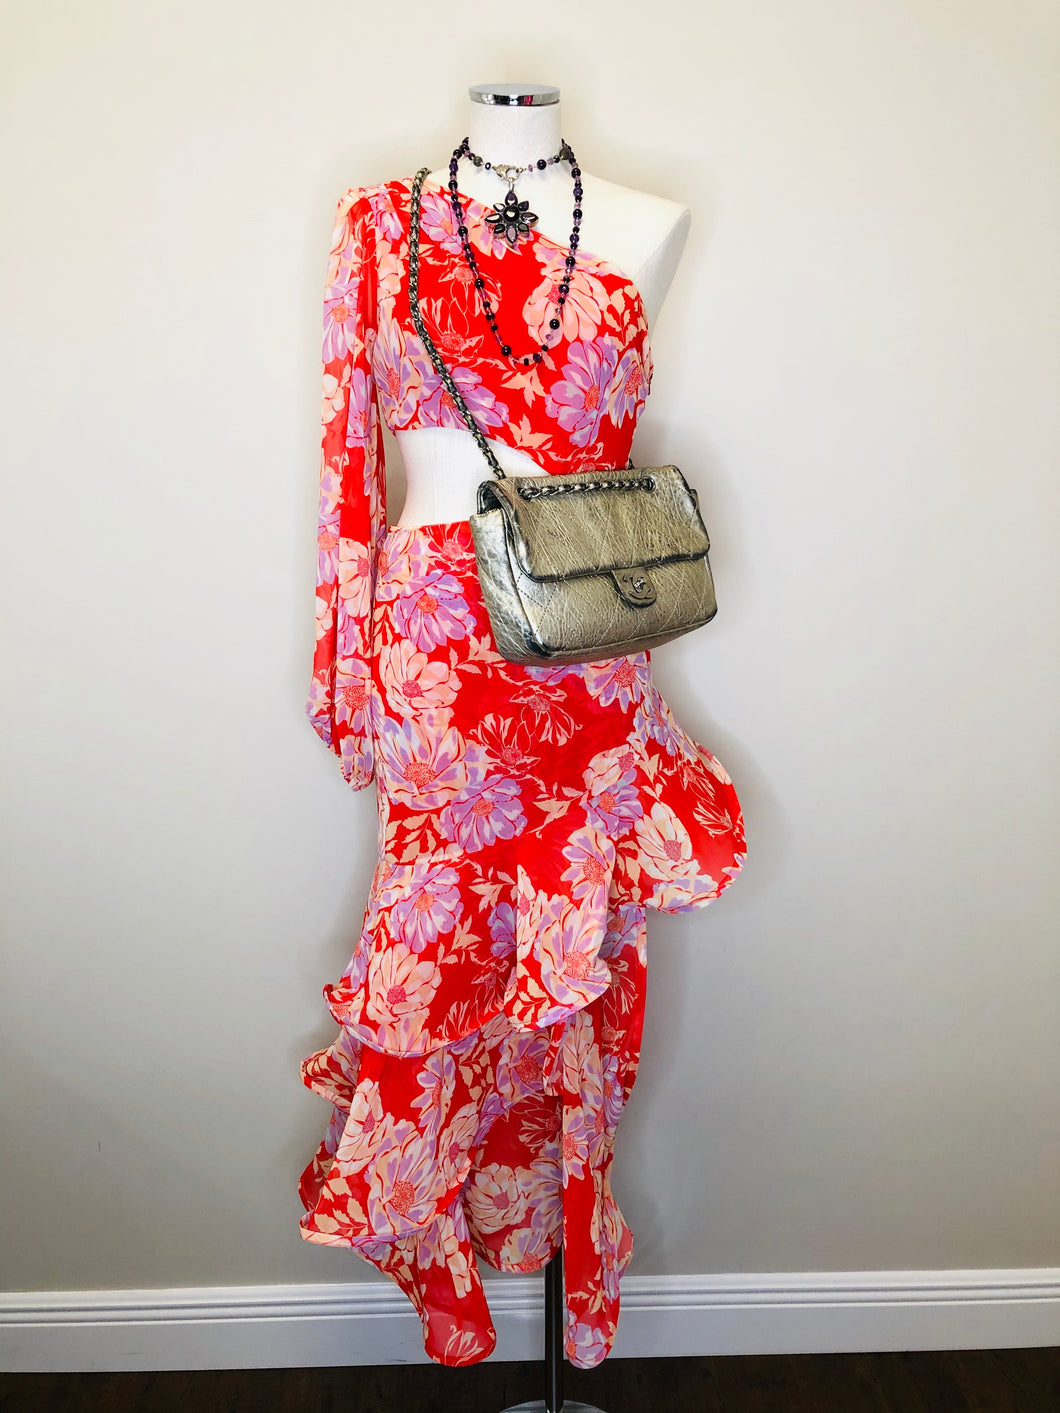 Alexis Sabetta Floral Dress Sizes S and M